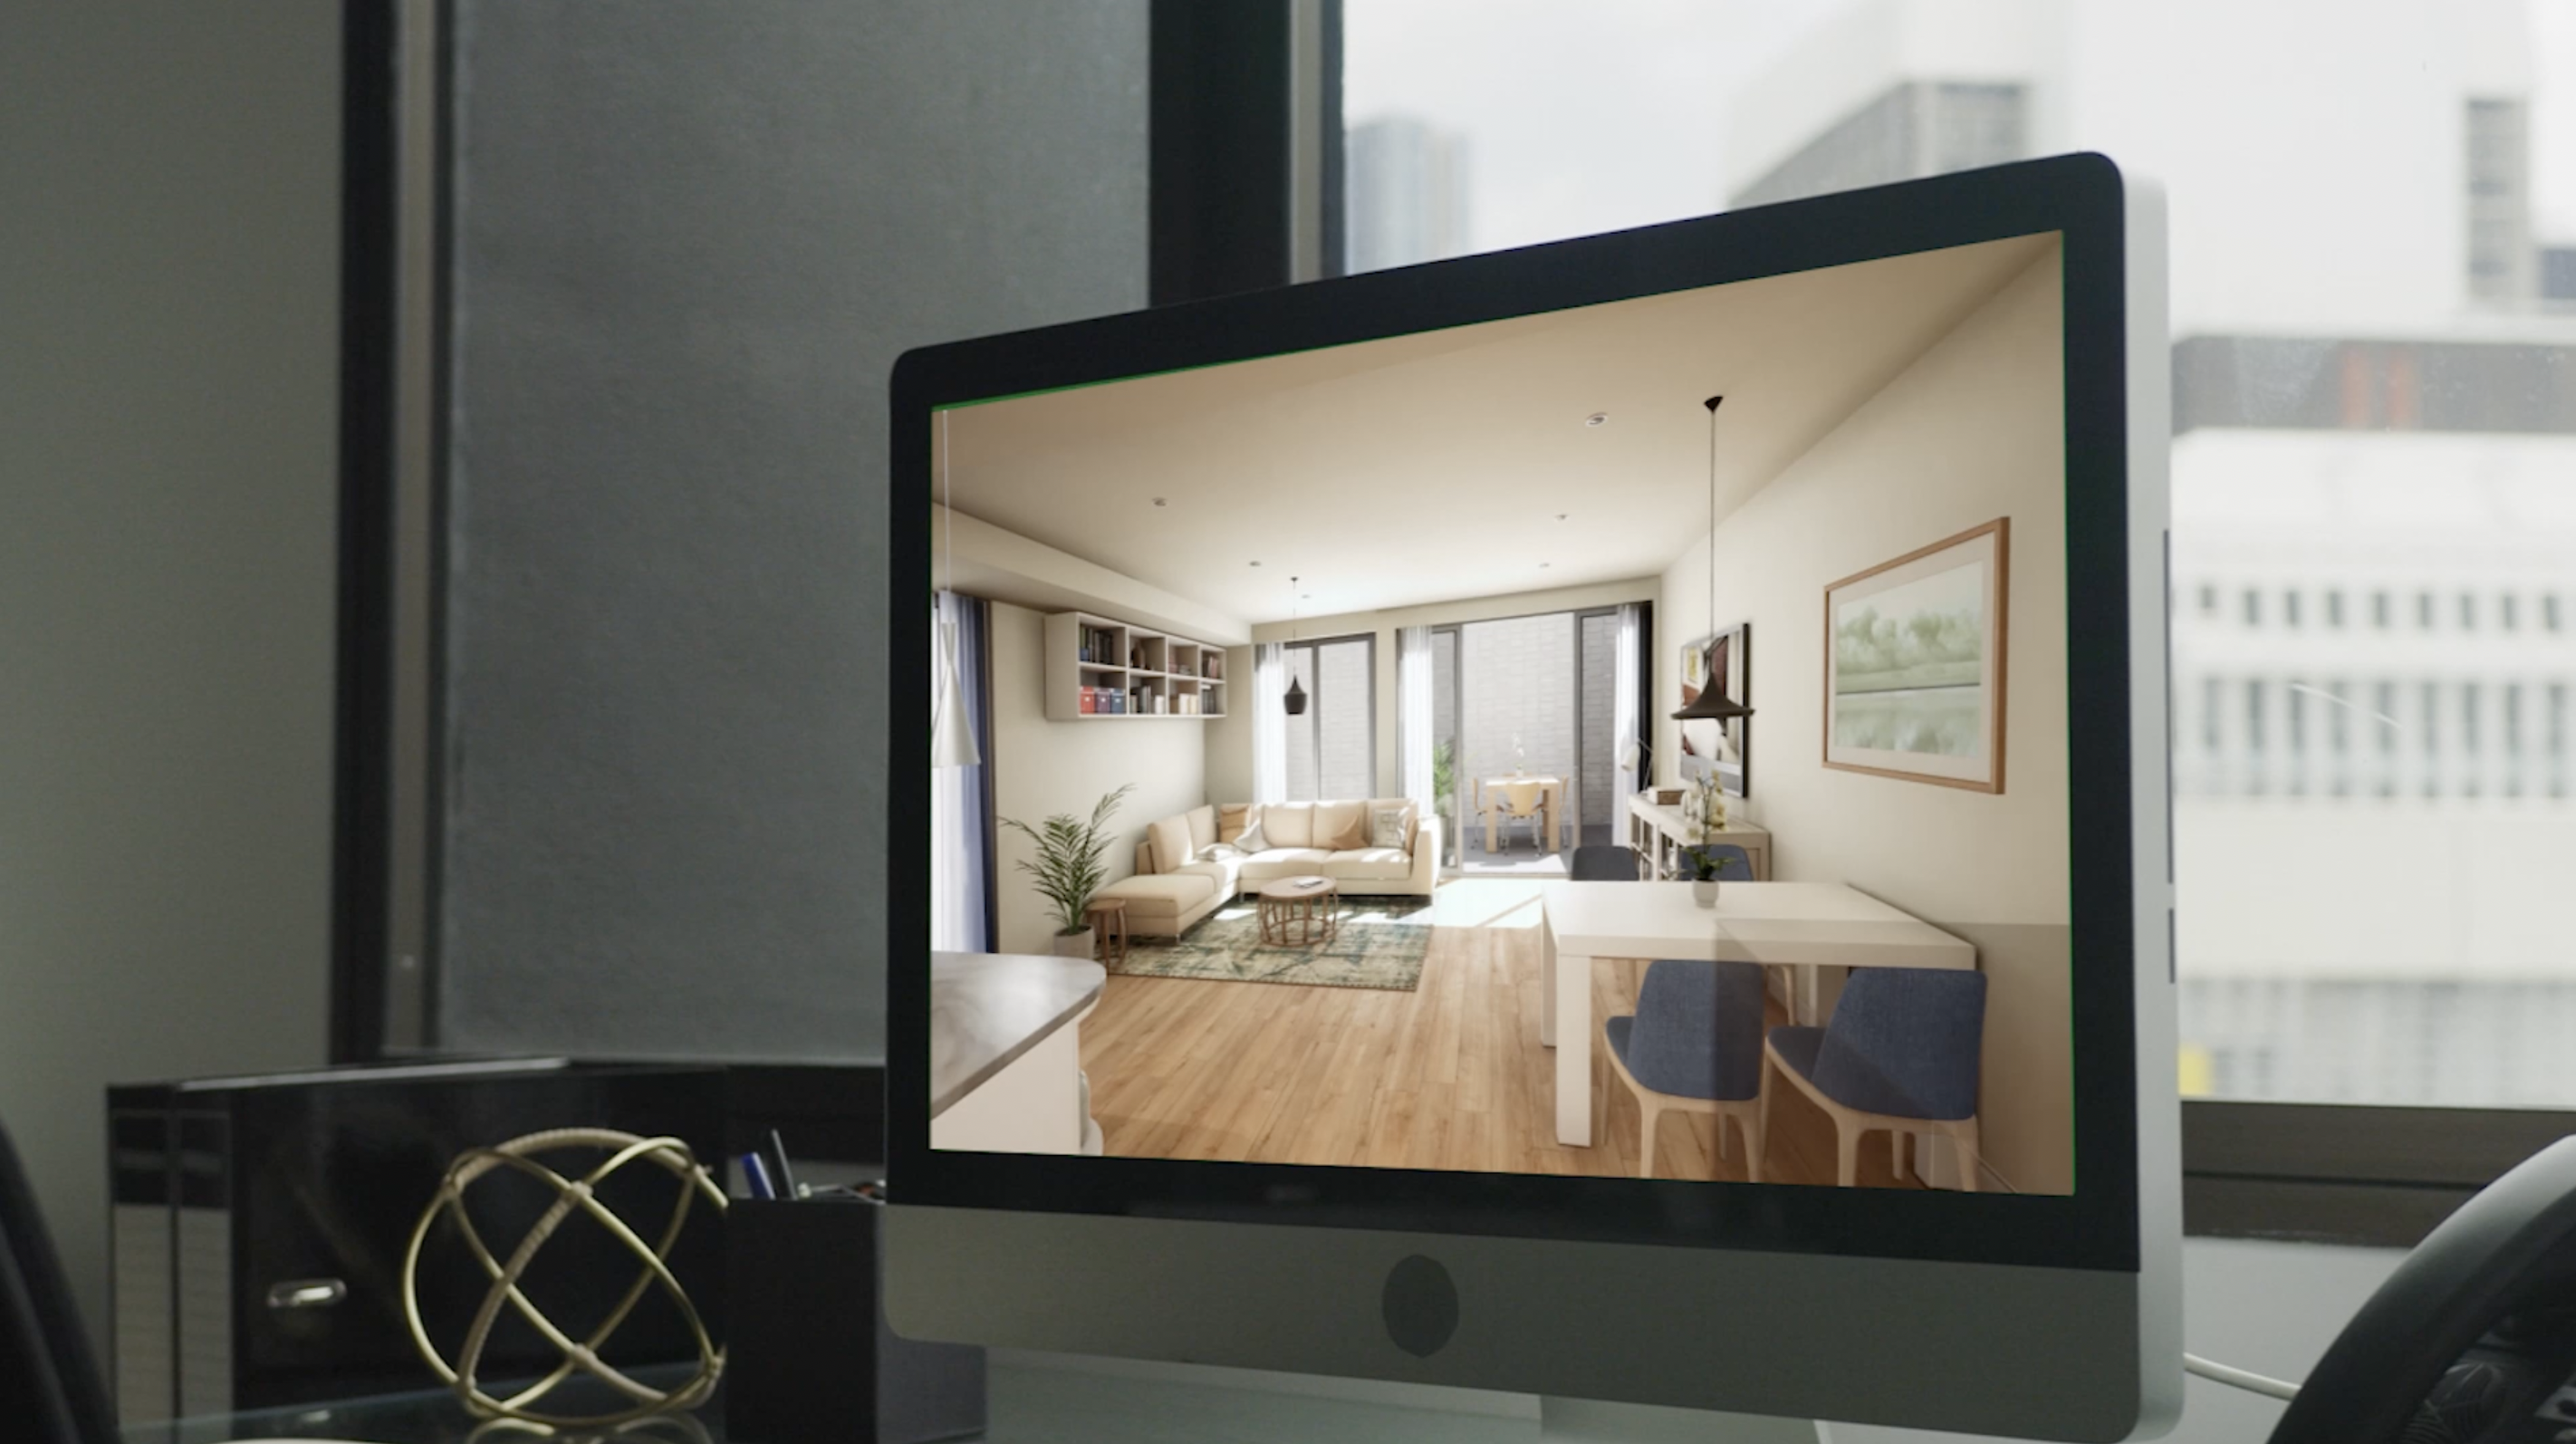 Architectural visualisation in Real Time